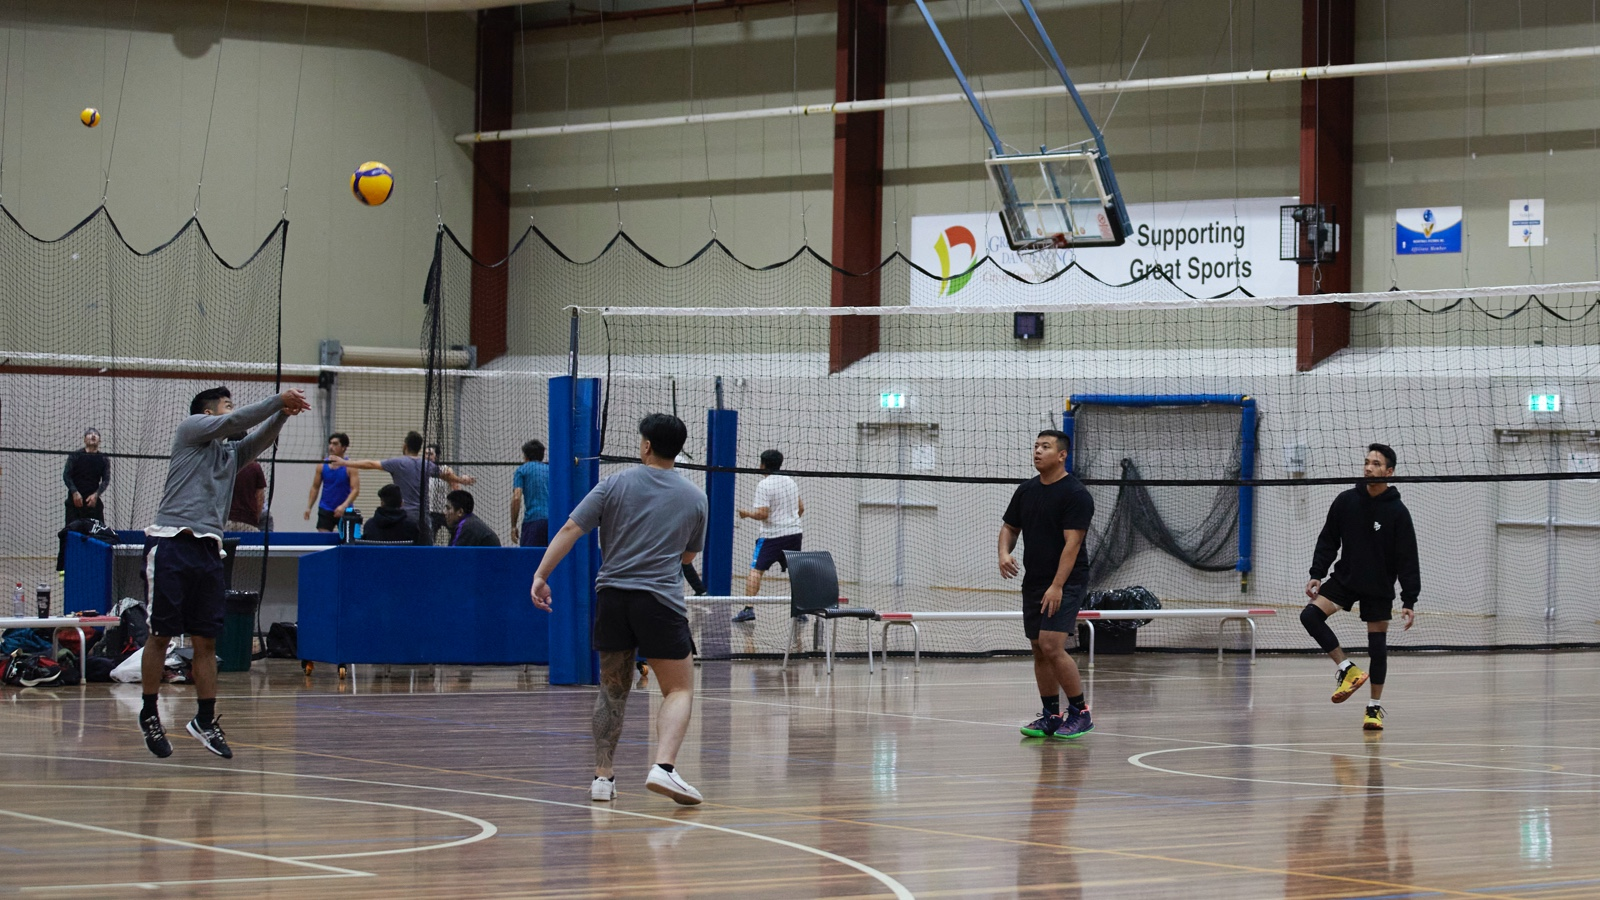 Group of male Volleyball players playing indoors